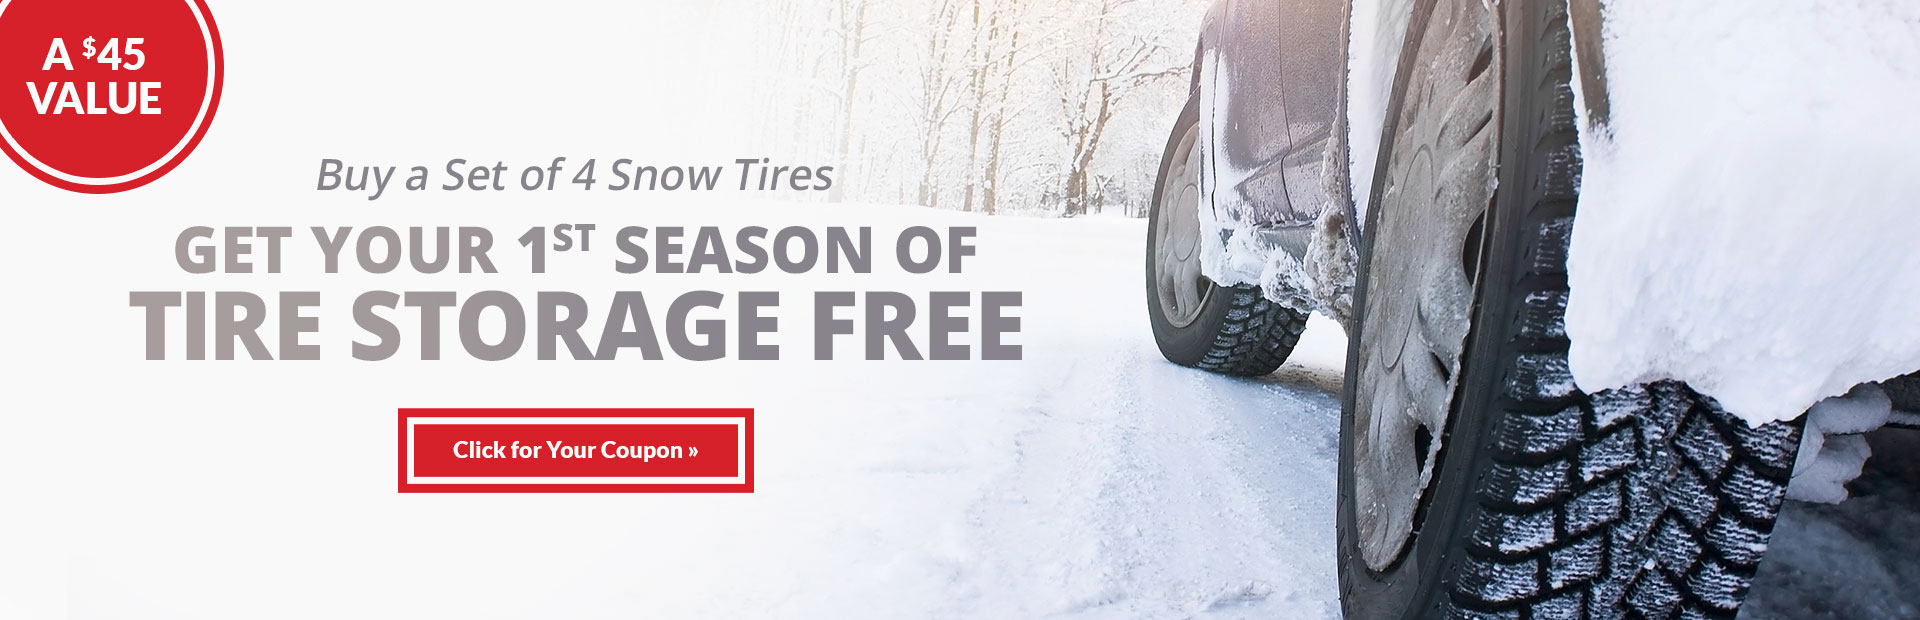 Buy a set of 4 snow tires, get your 1st season of tire storage free! Click here for the coupon.